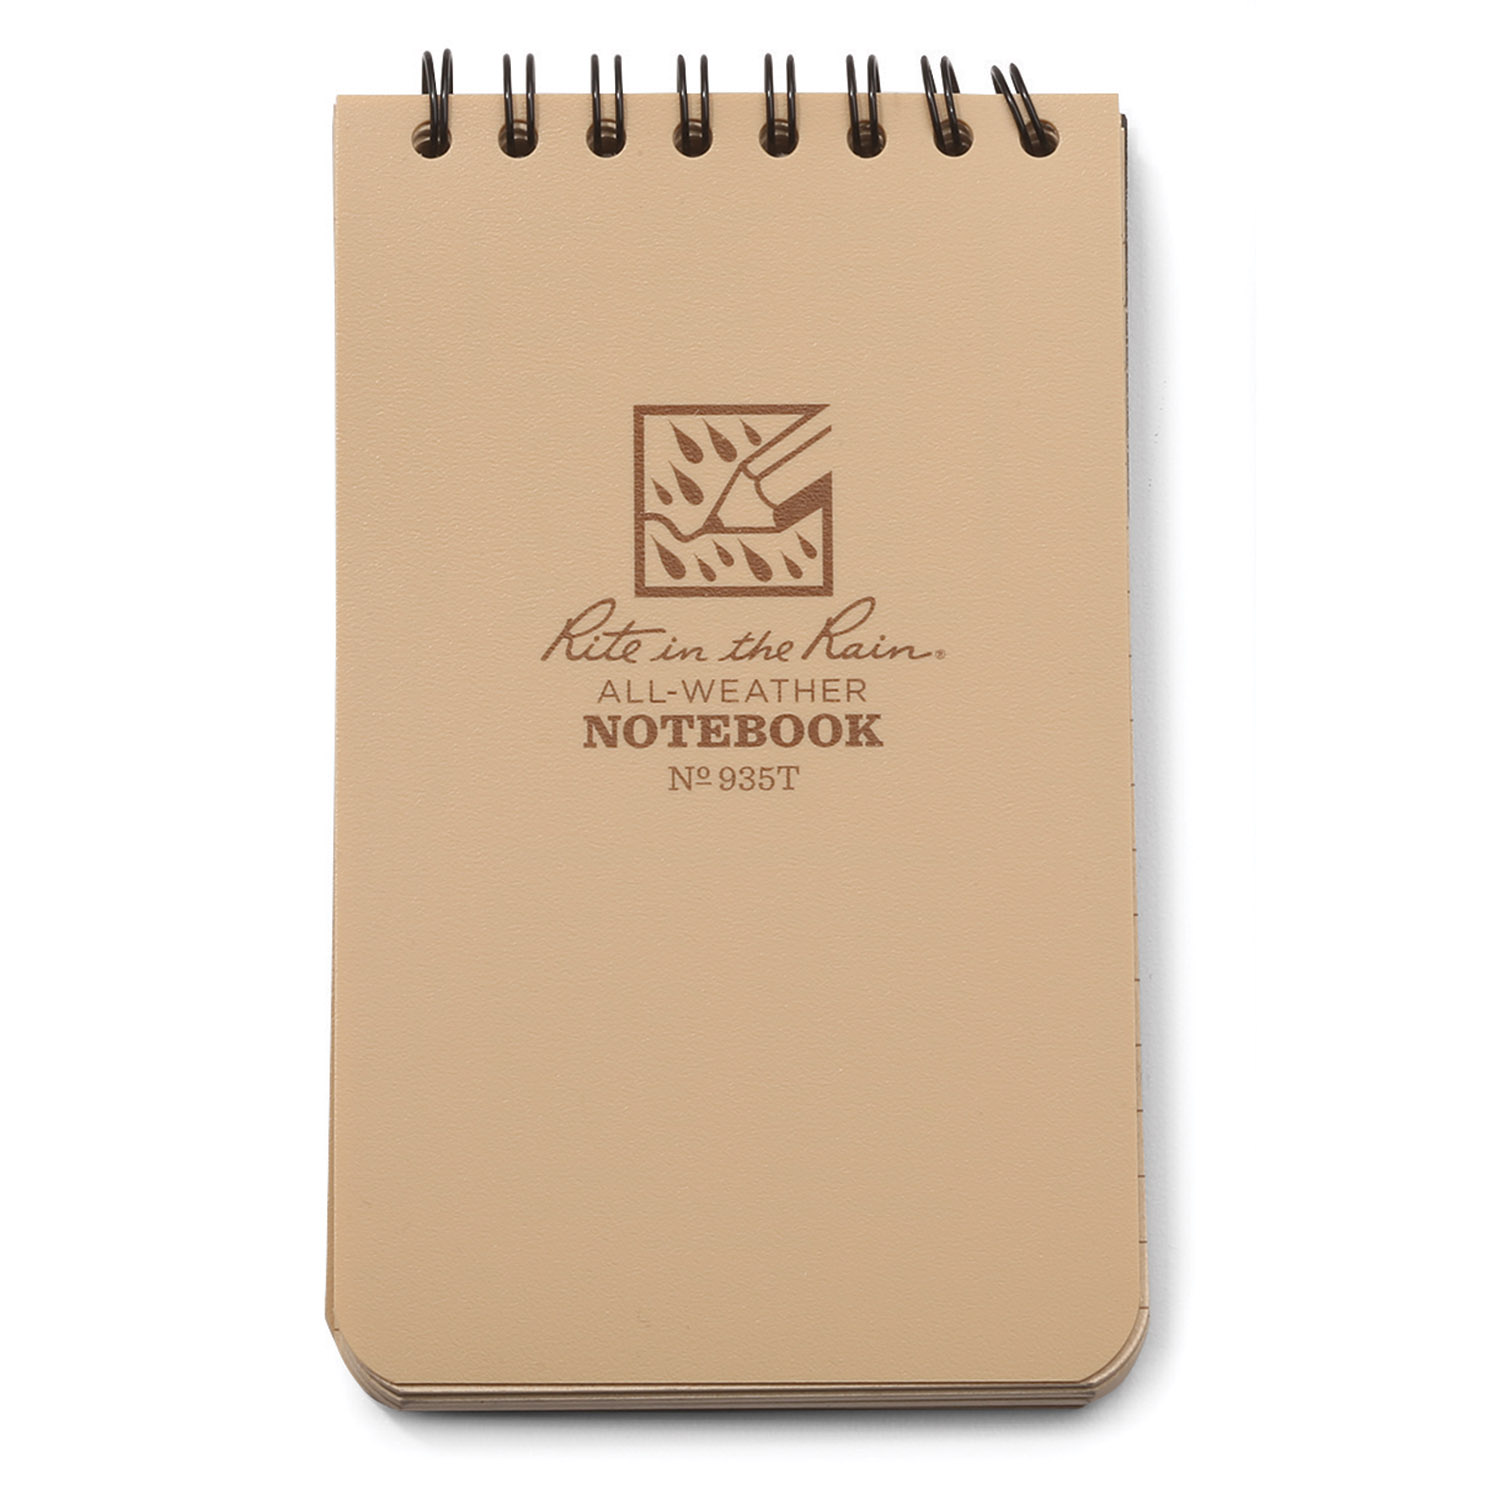 Rite in the Rain All Weather Field Interview Notebook, Tan